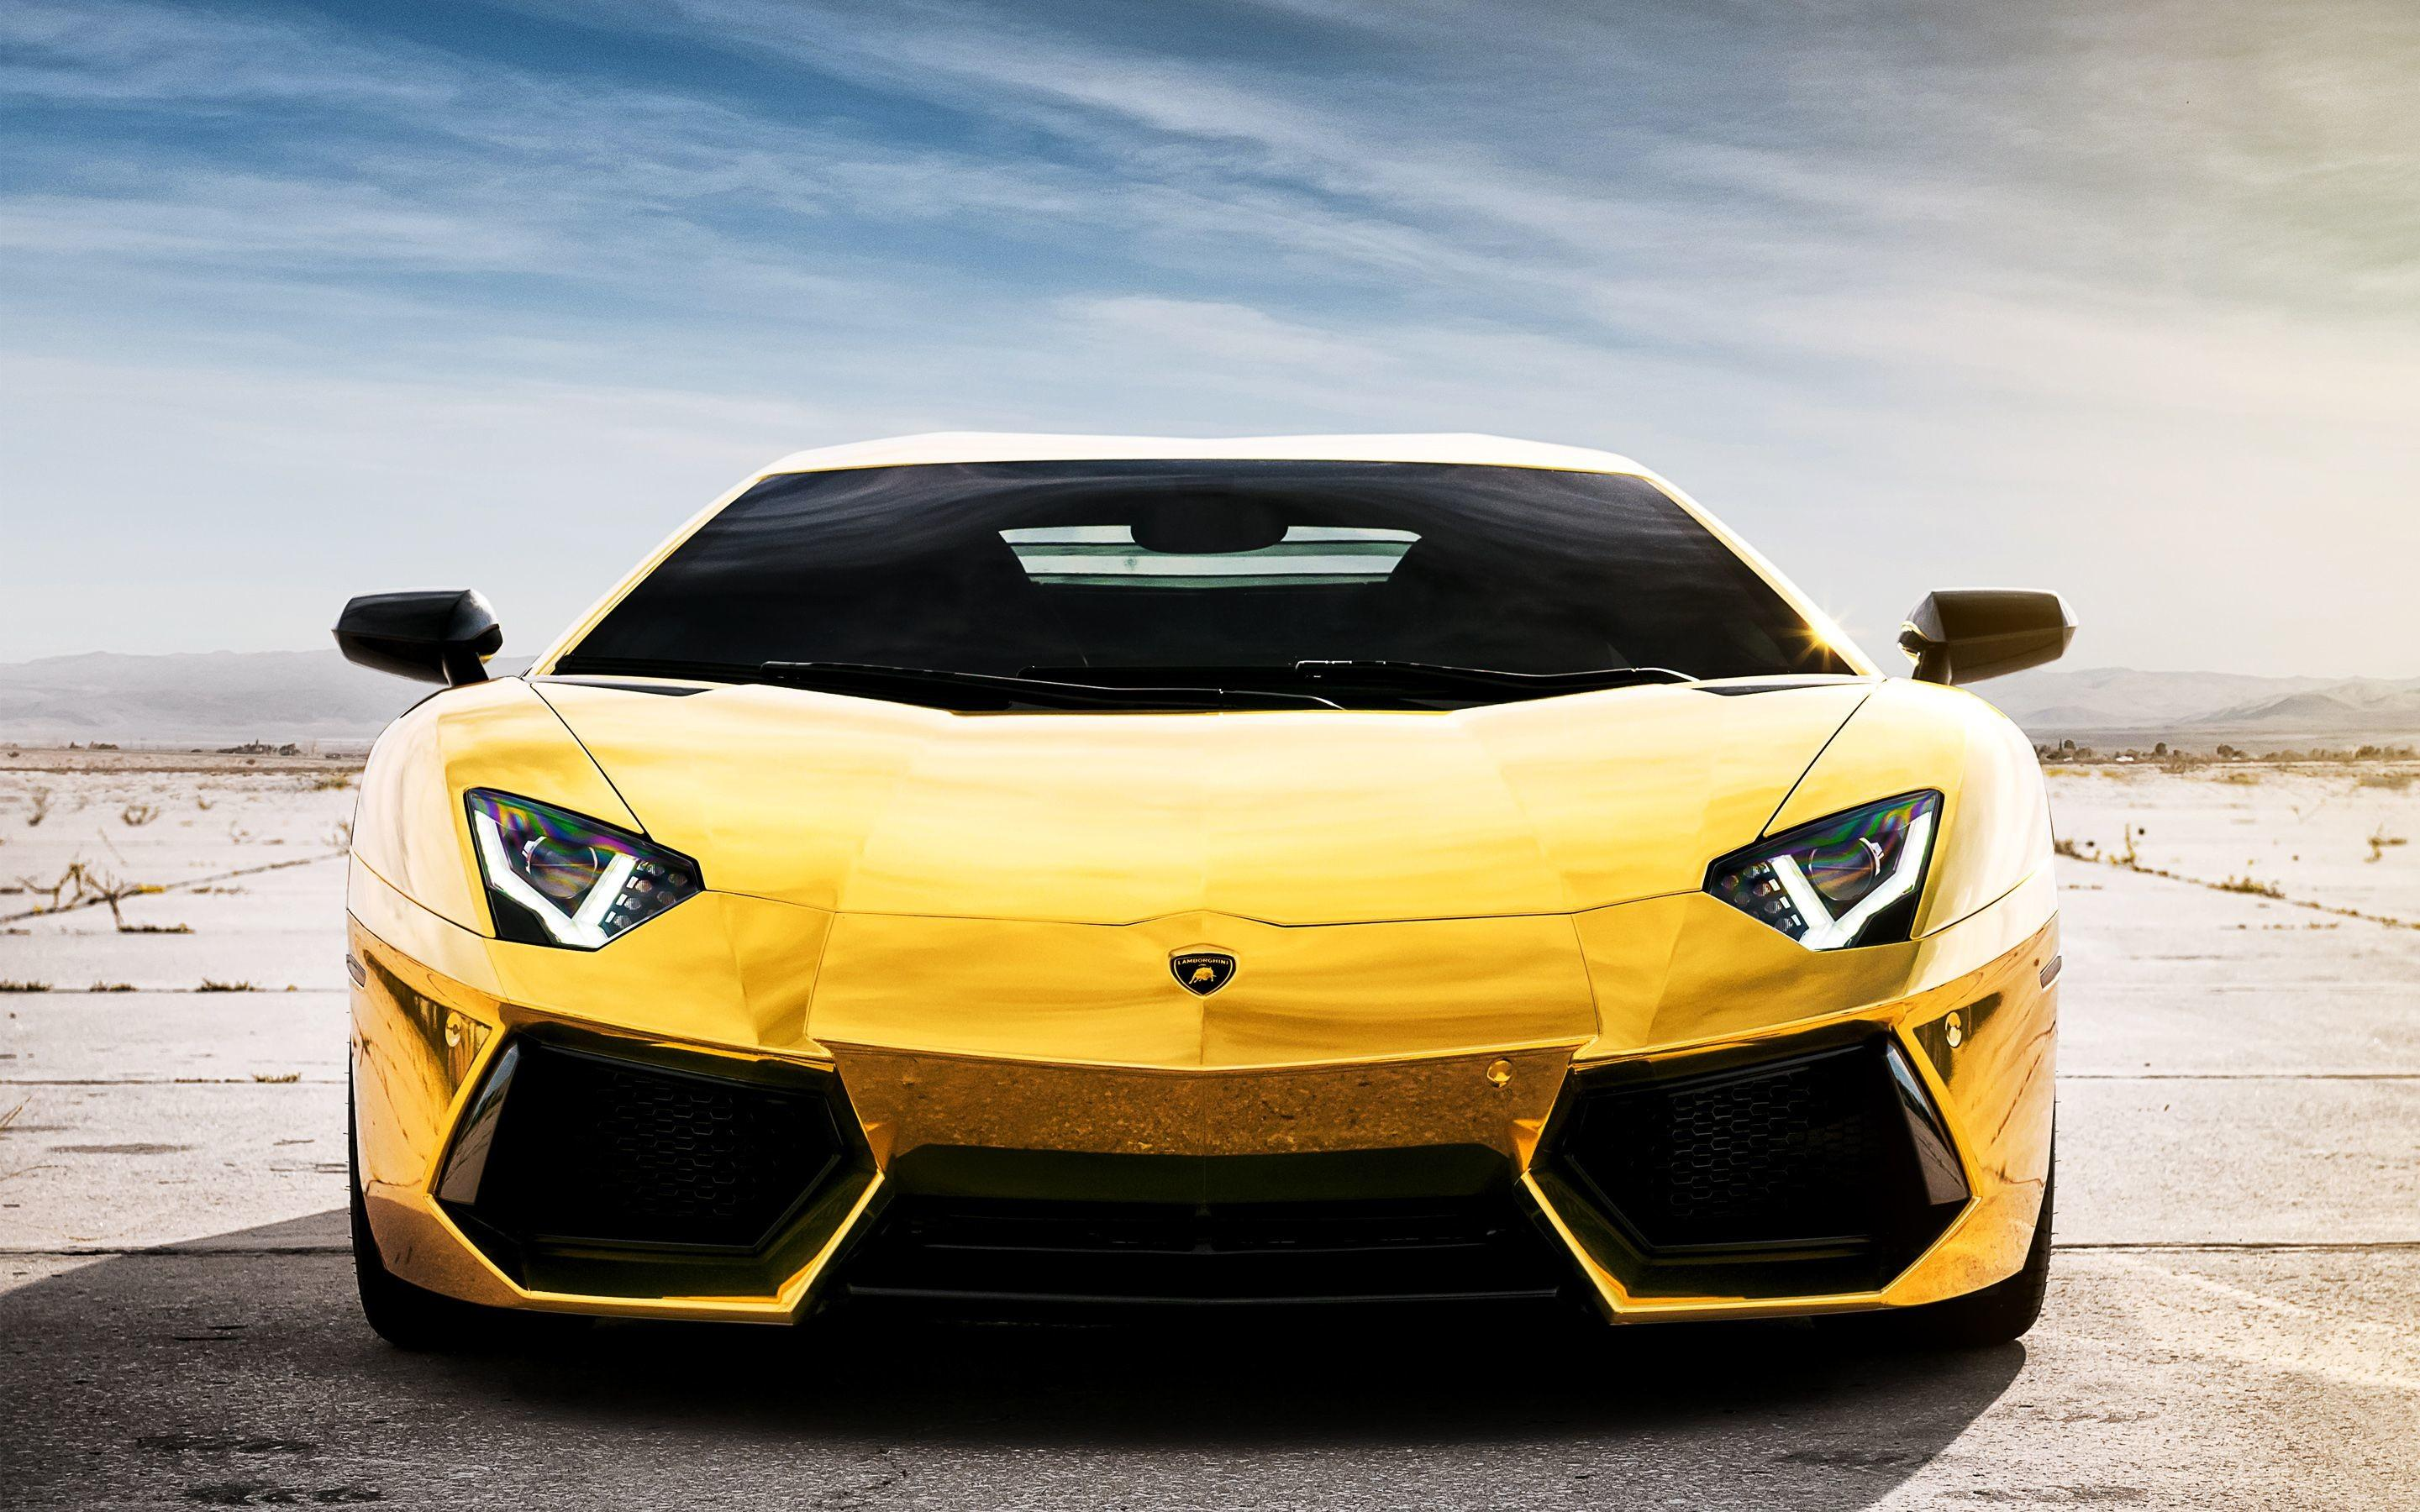 Gold Supercars Wallpapers Wallpaper Cave